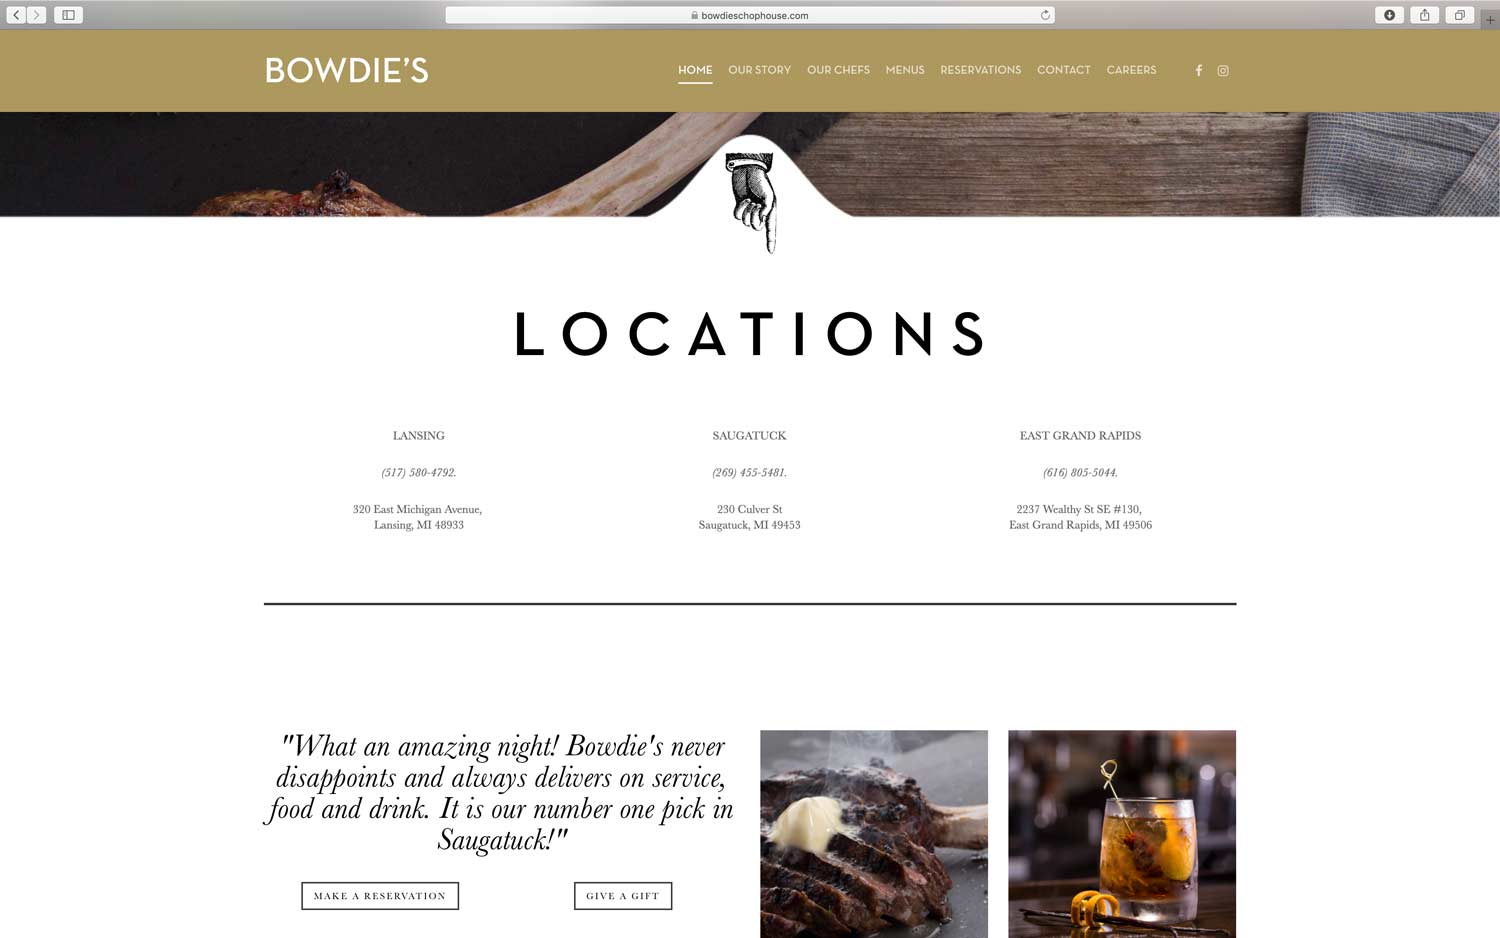 restaurant website design with multiple locations